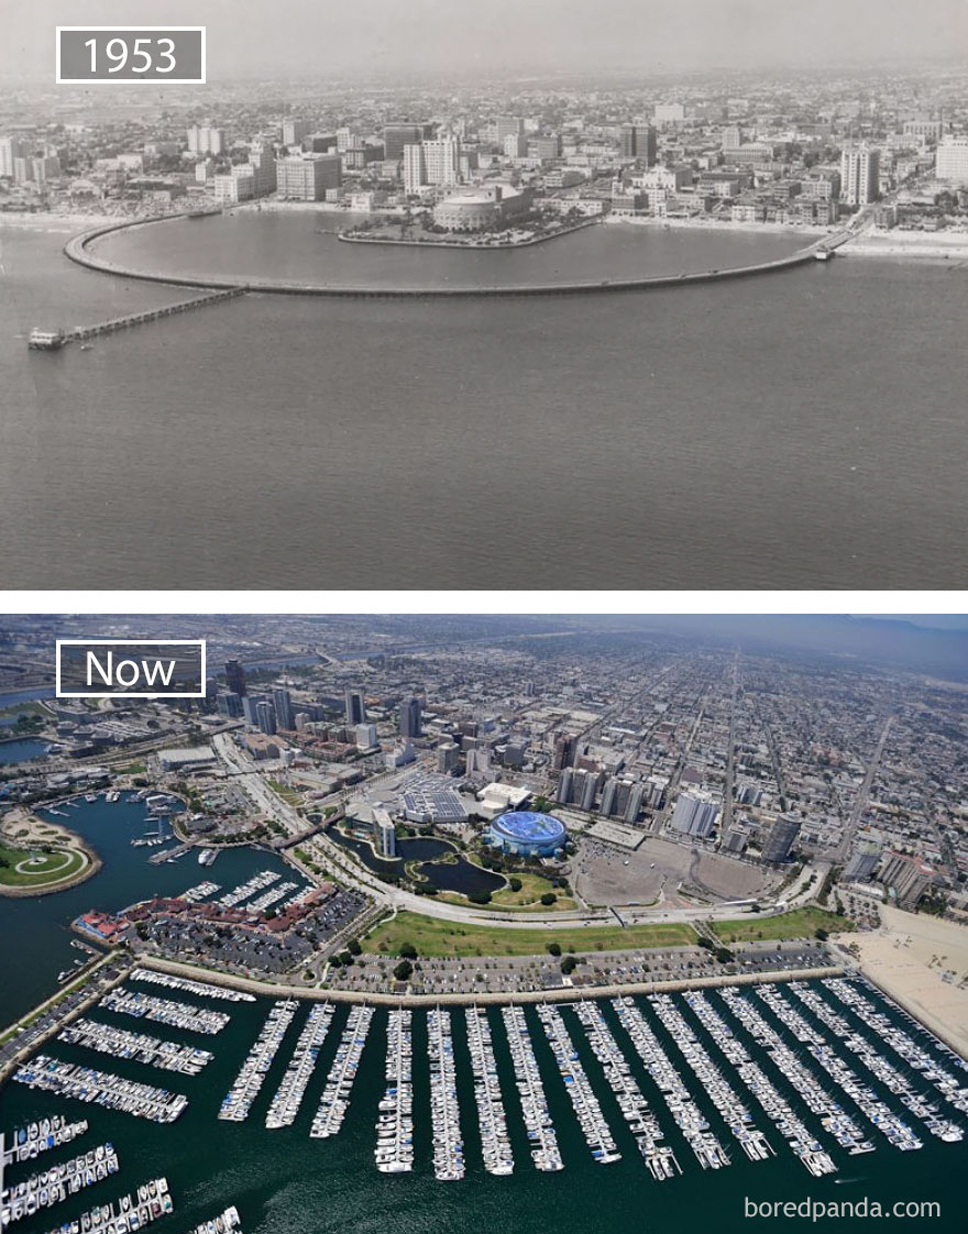 how-famous-city-changed-timelapse-evolution-before-after-27-577cfacc8605a__880